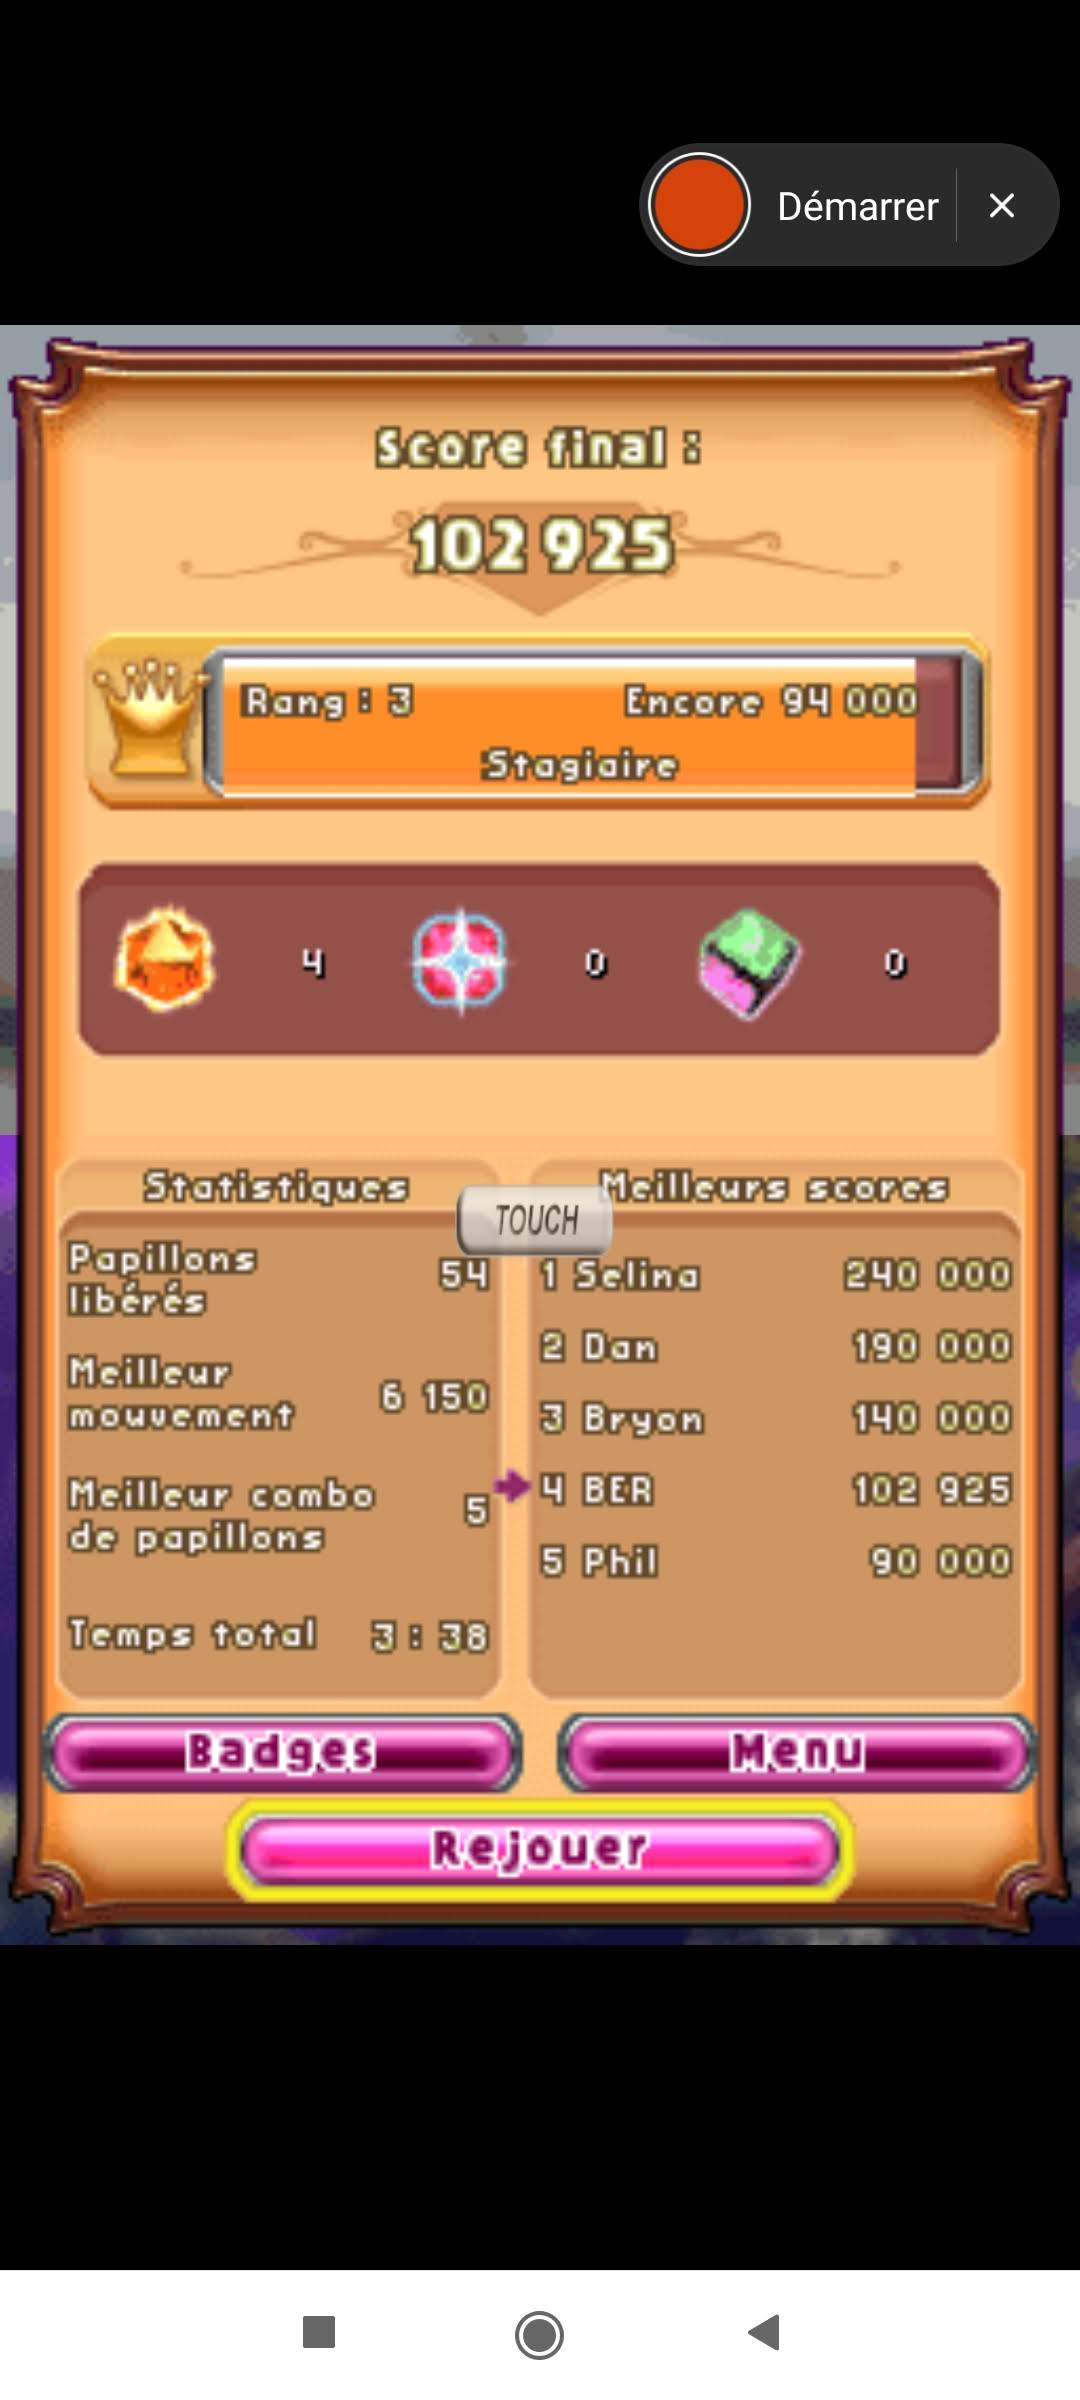 Larquey: Bejeweled 3: Butterflies [High Score] (Nintendo DS Emulated) 102,925 points on 2020-09-27 04:20:33